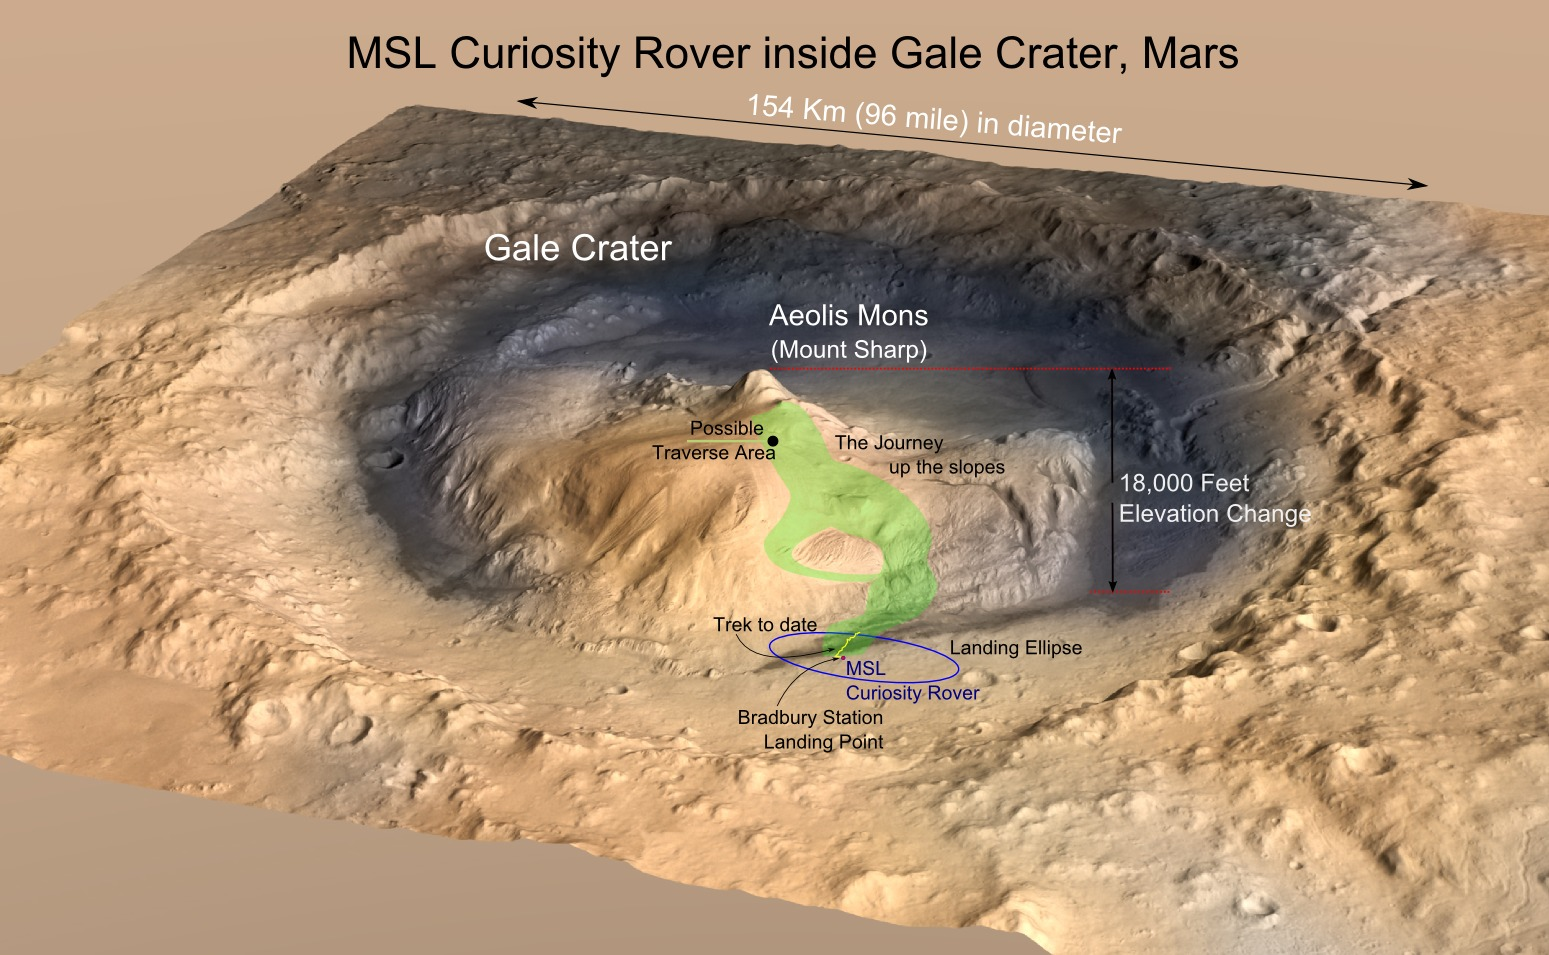 MRO image of Gale Crater illustrating the landing location and trek of the Rover Curiosity. - Image Credits: NASA/JPL, illustration, T.Reyes